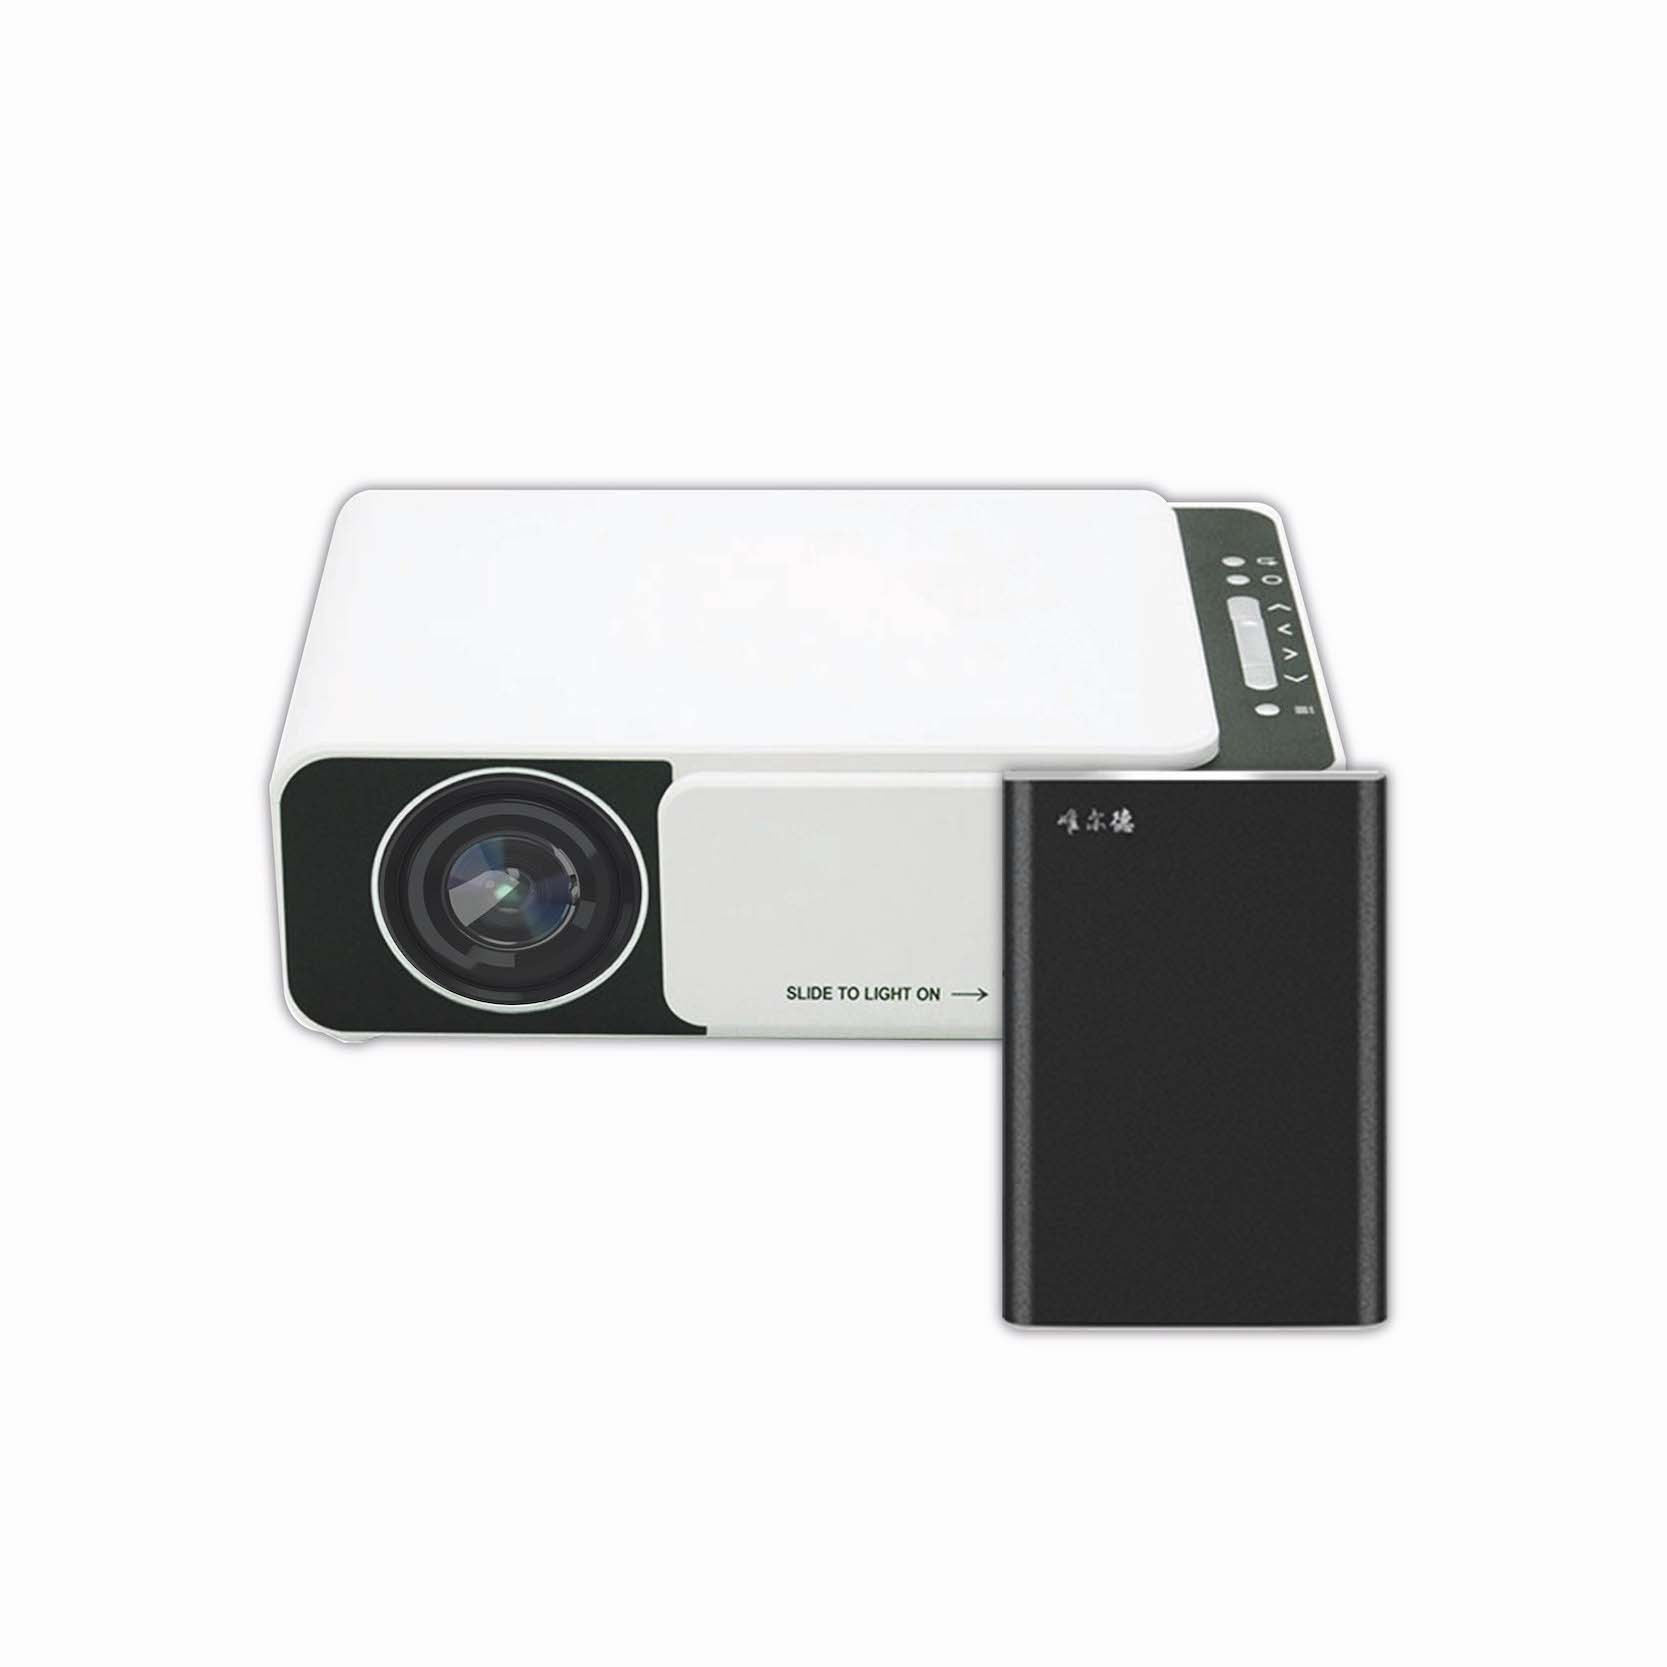 TechX Pro X HD Projector + Hard Drive 80GB